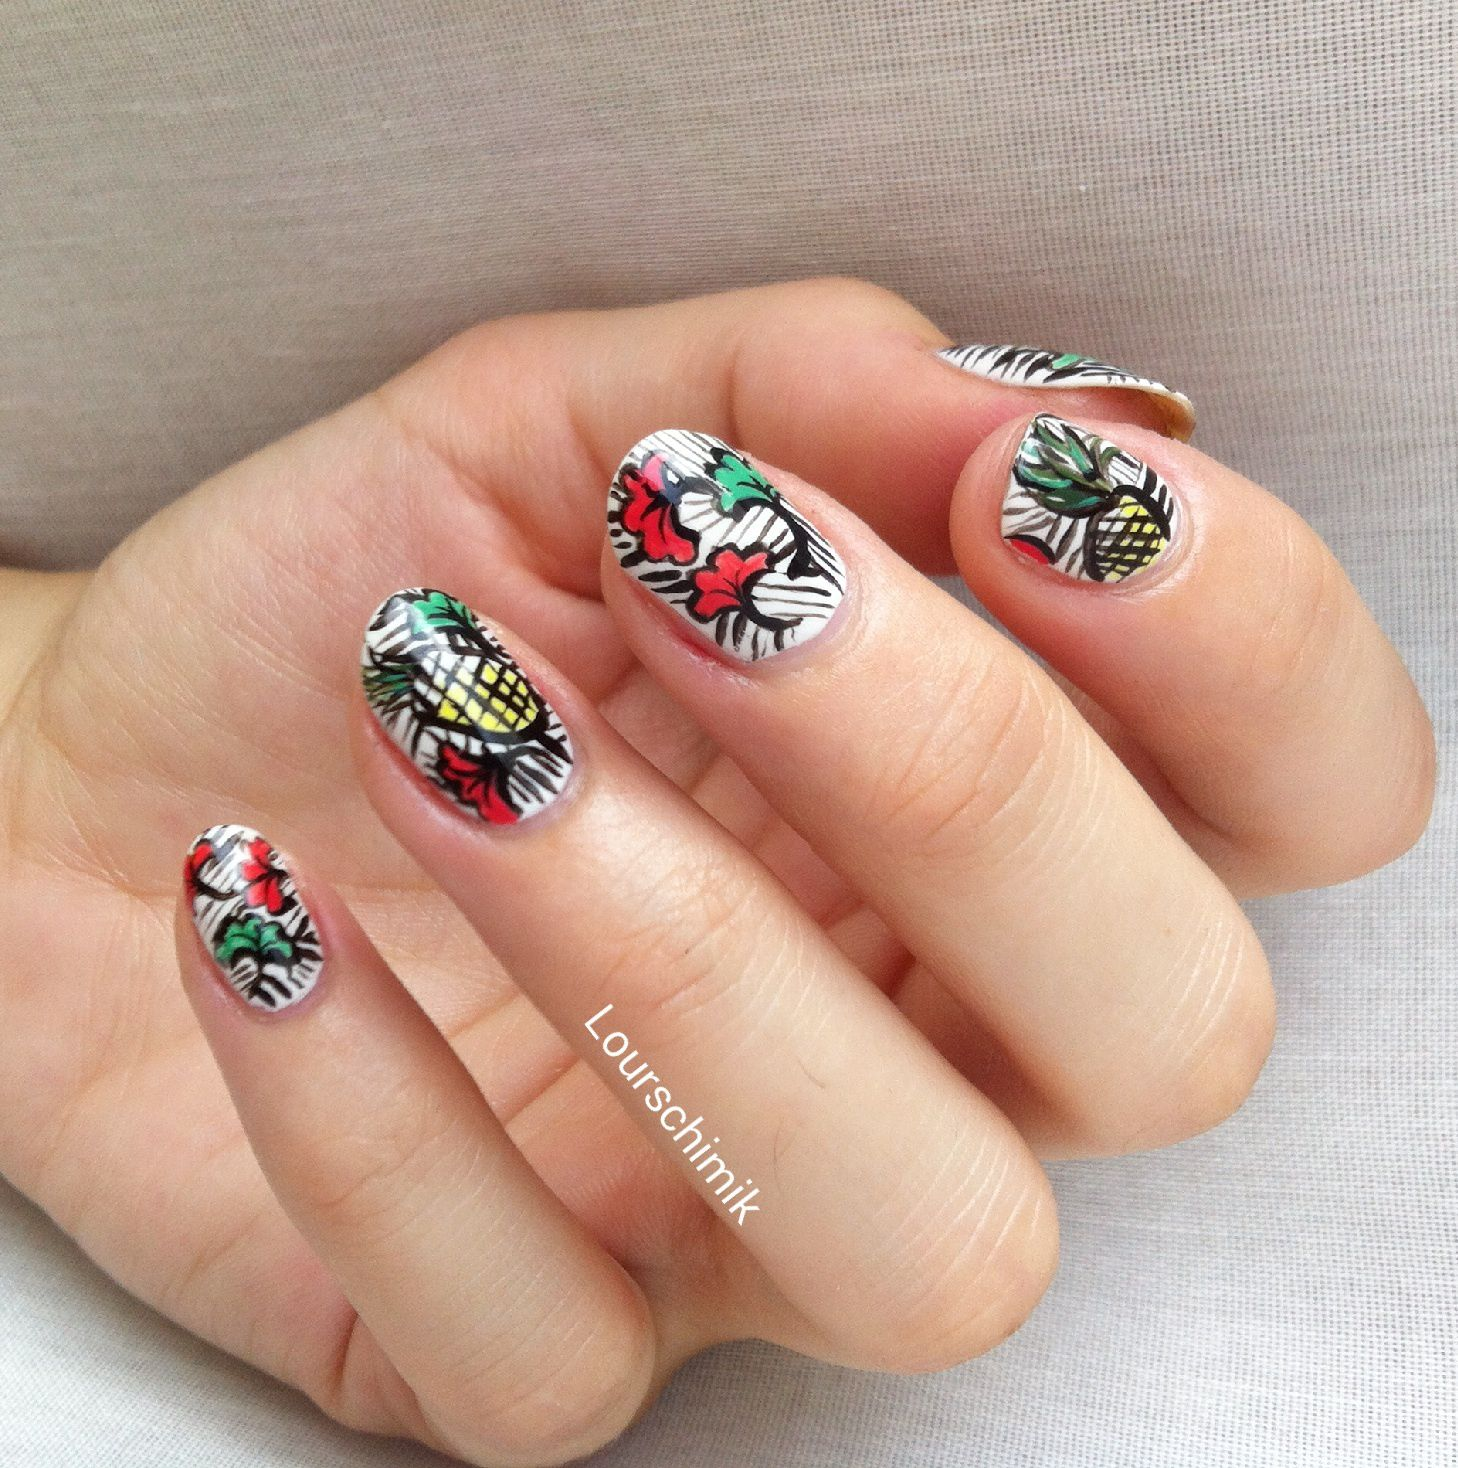 nailstorming fruits d'été